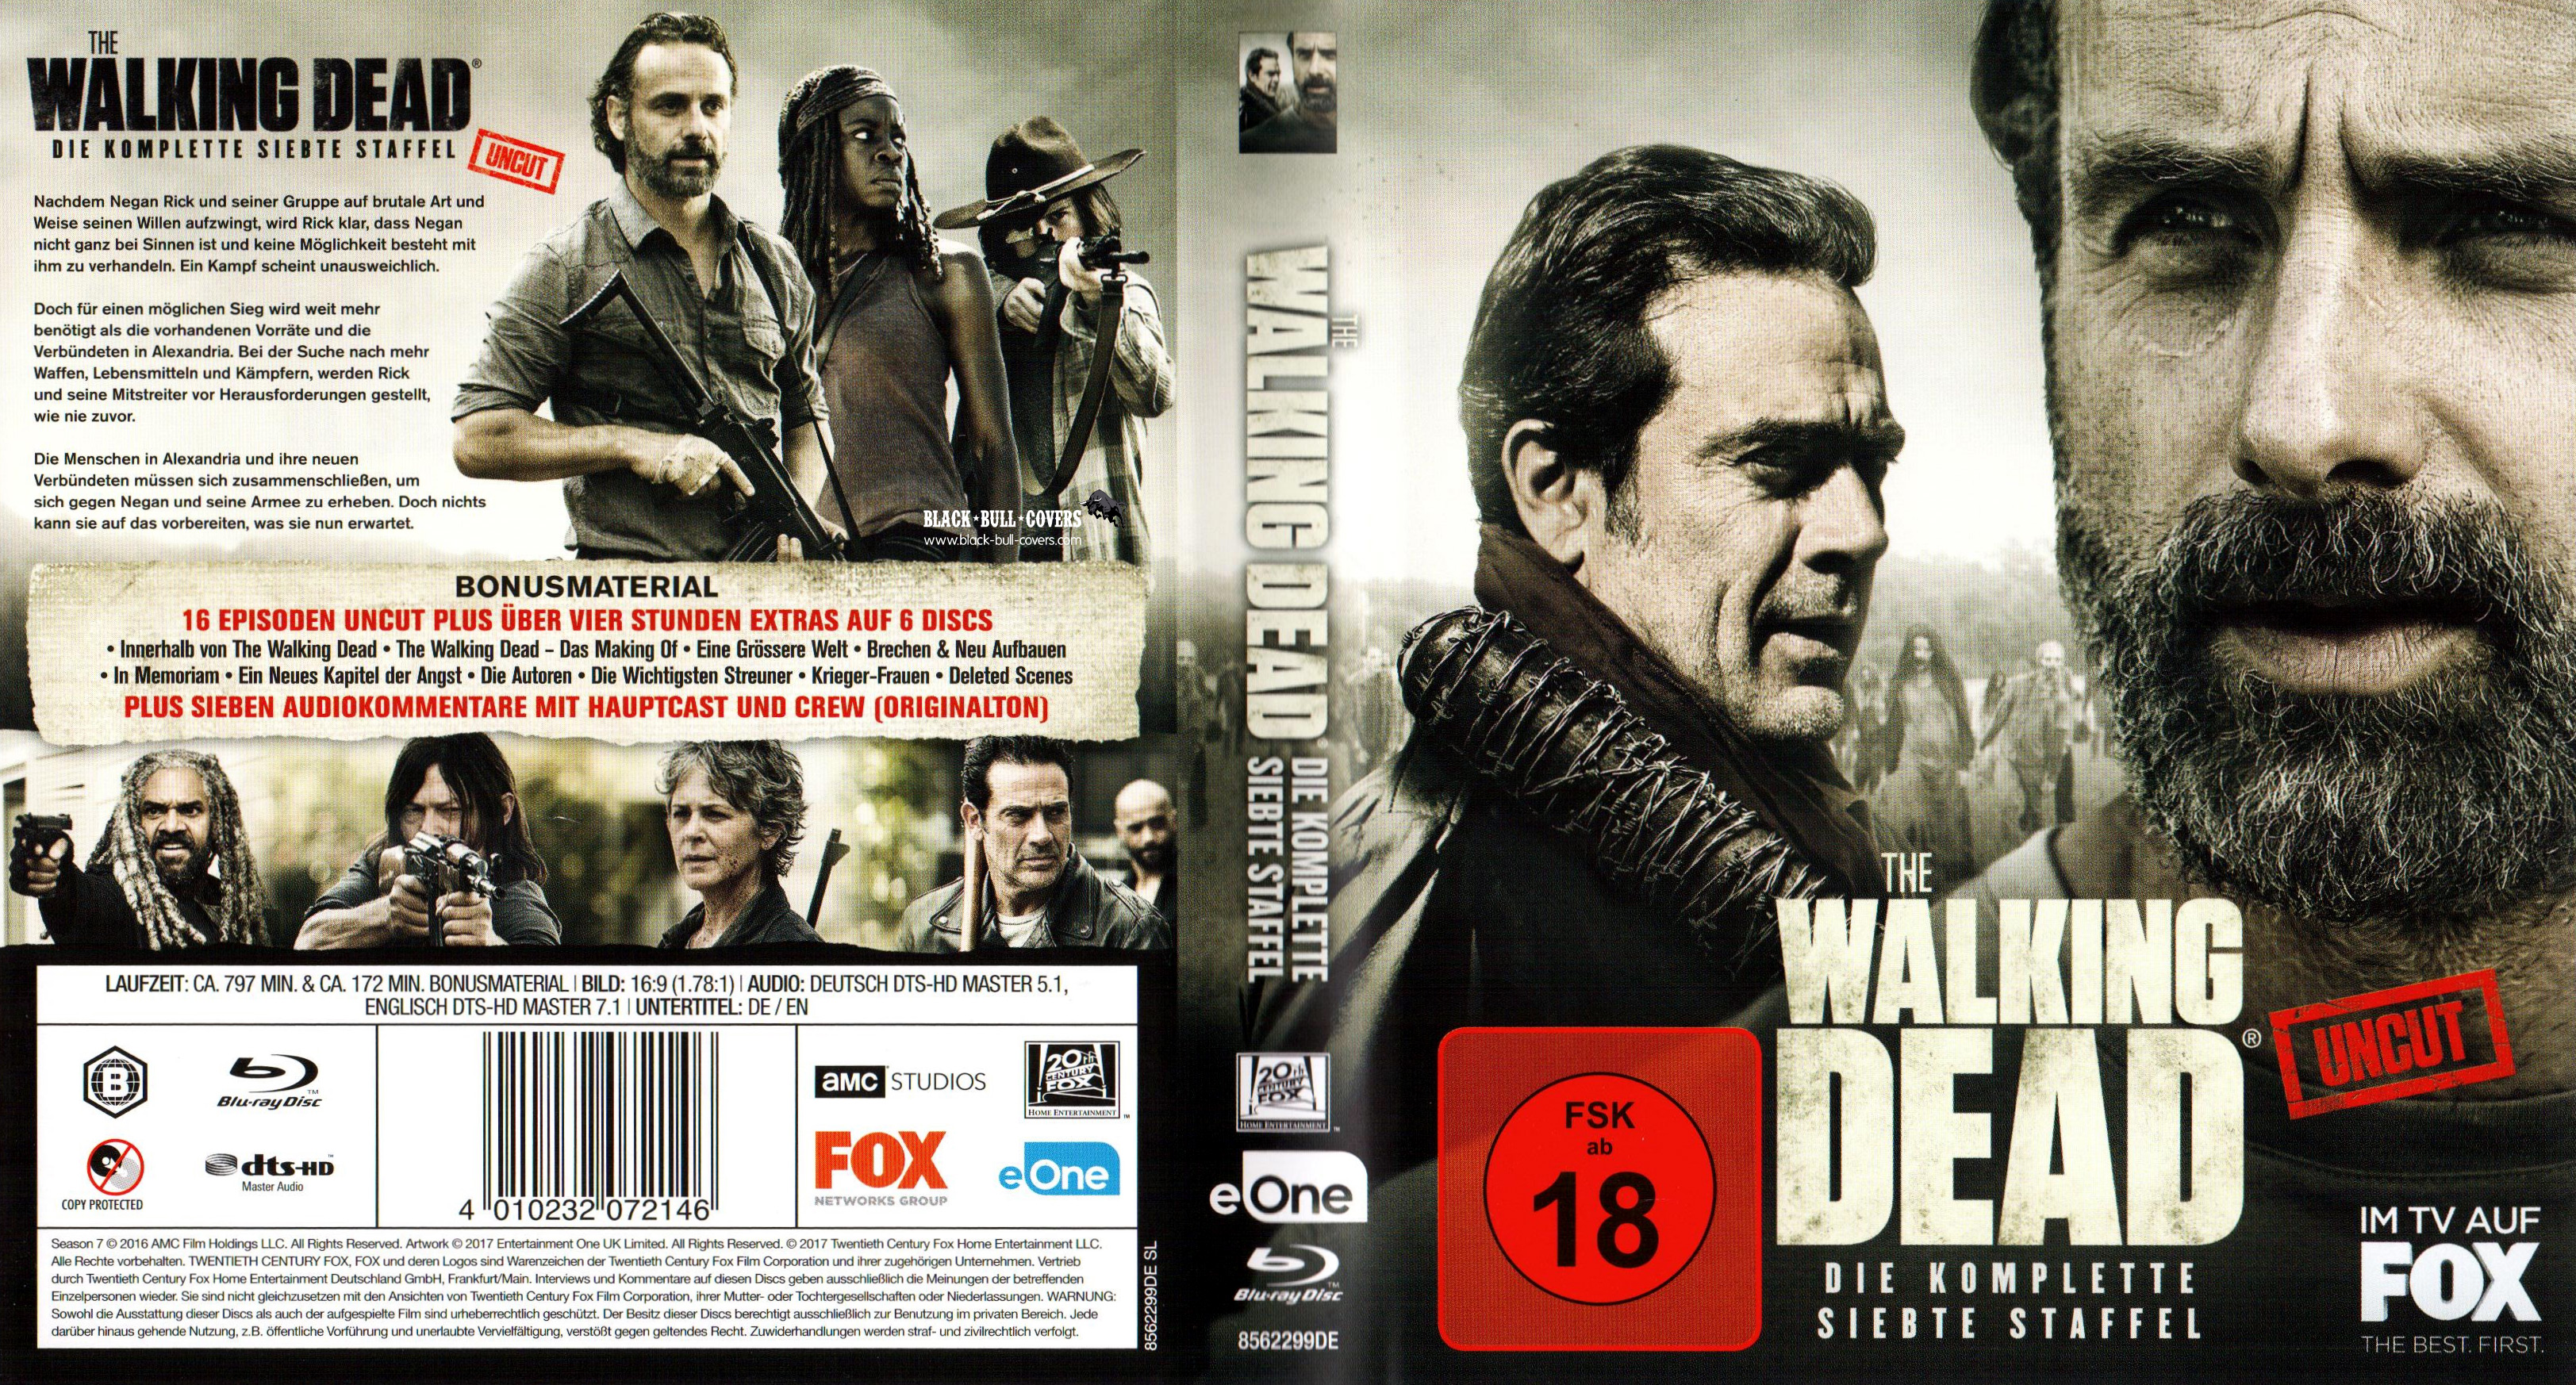 The Walking Dead Staffel 7?